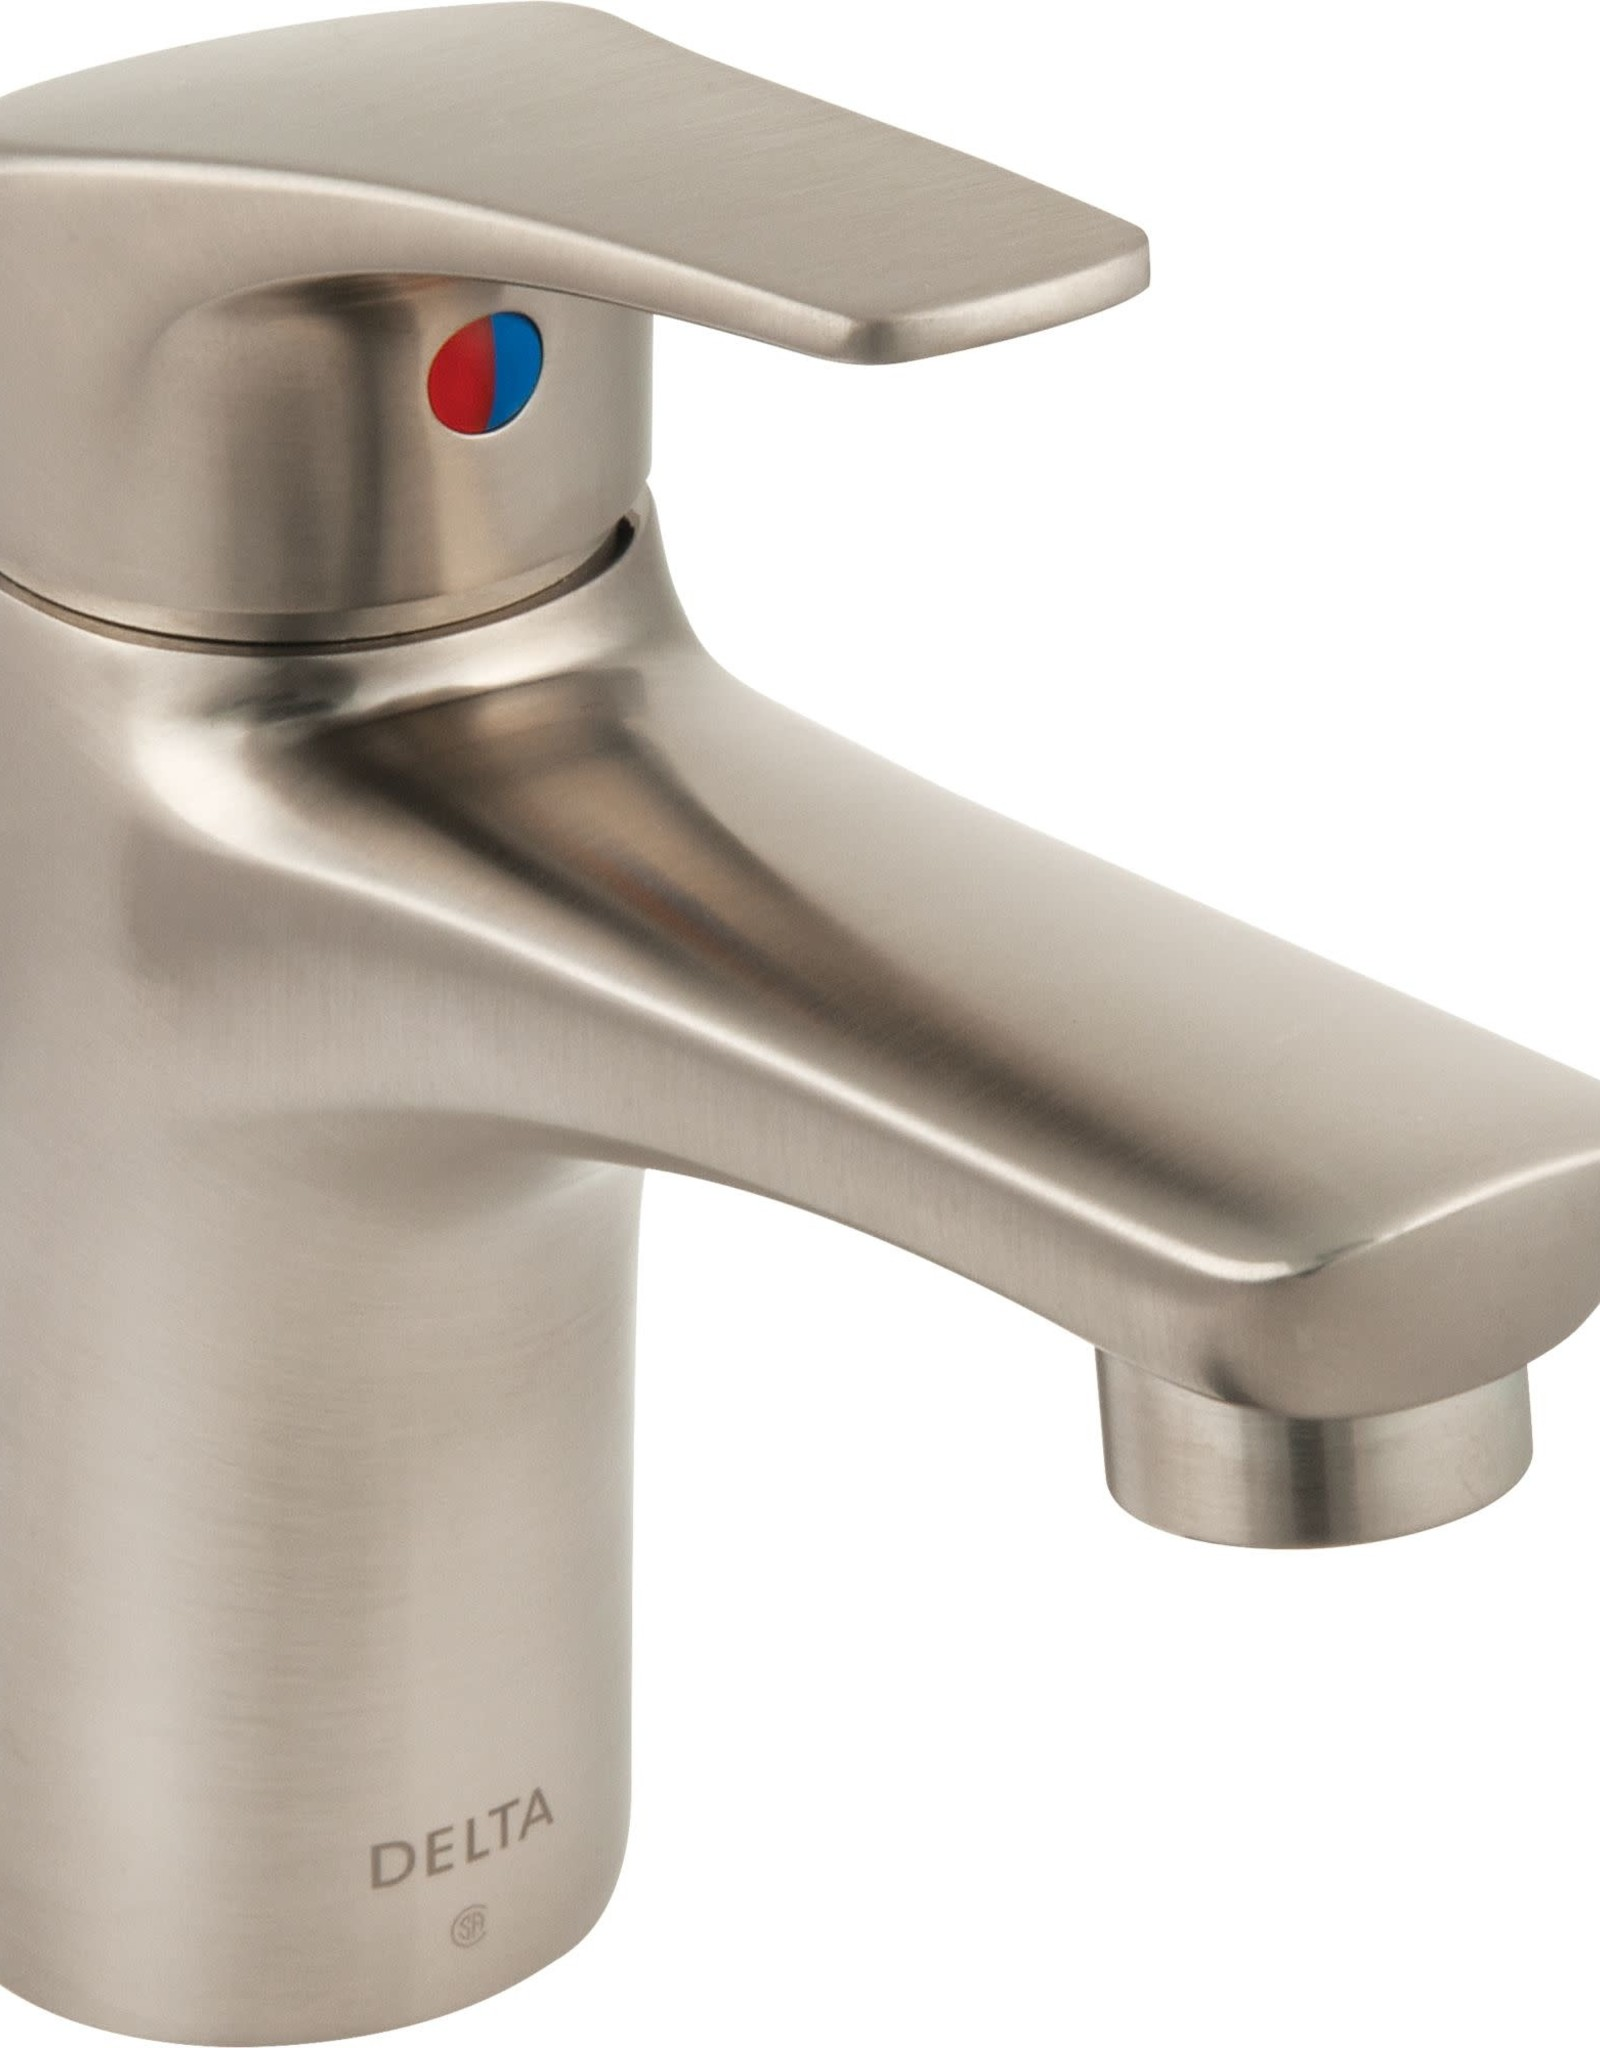 Delta DELTA WYNNE - BRILLIANCE STAINLESS SINGLE HANDLE LAVATORY FAUCET